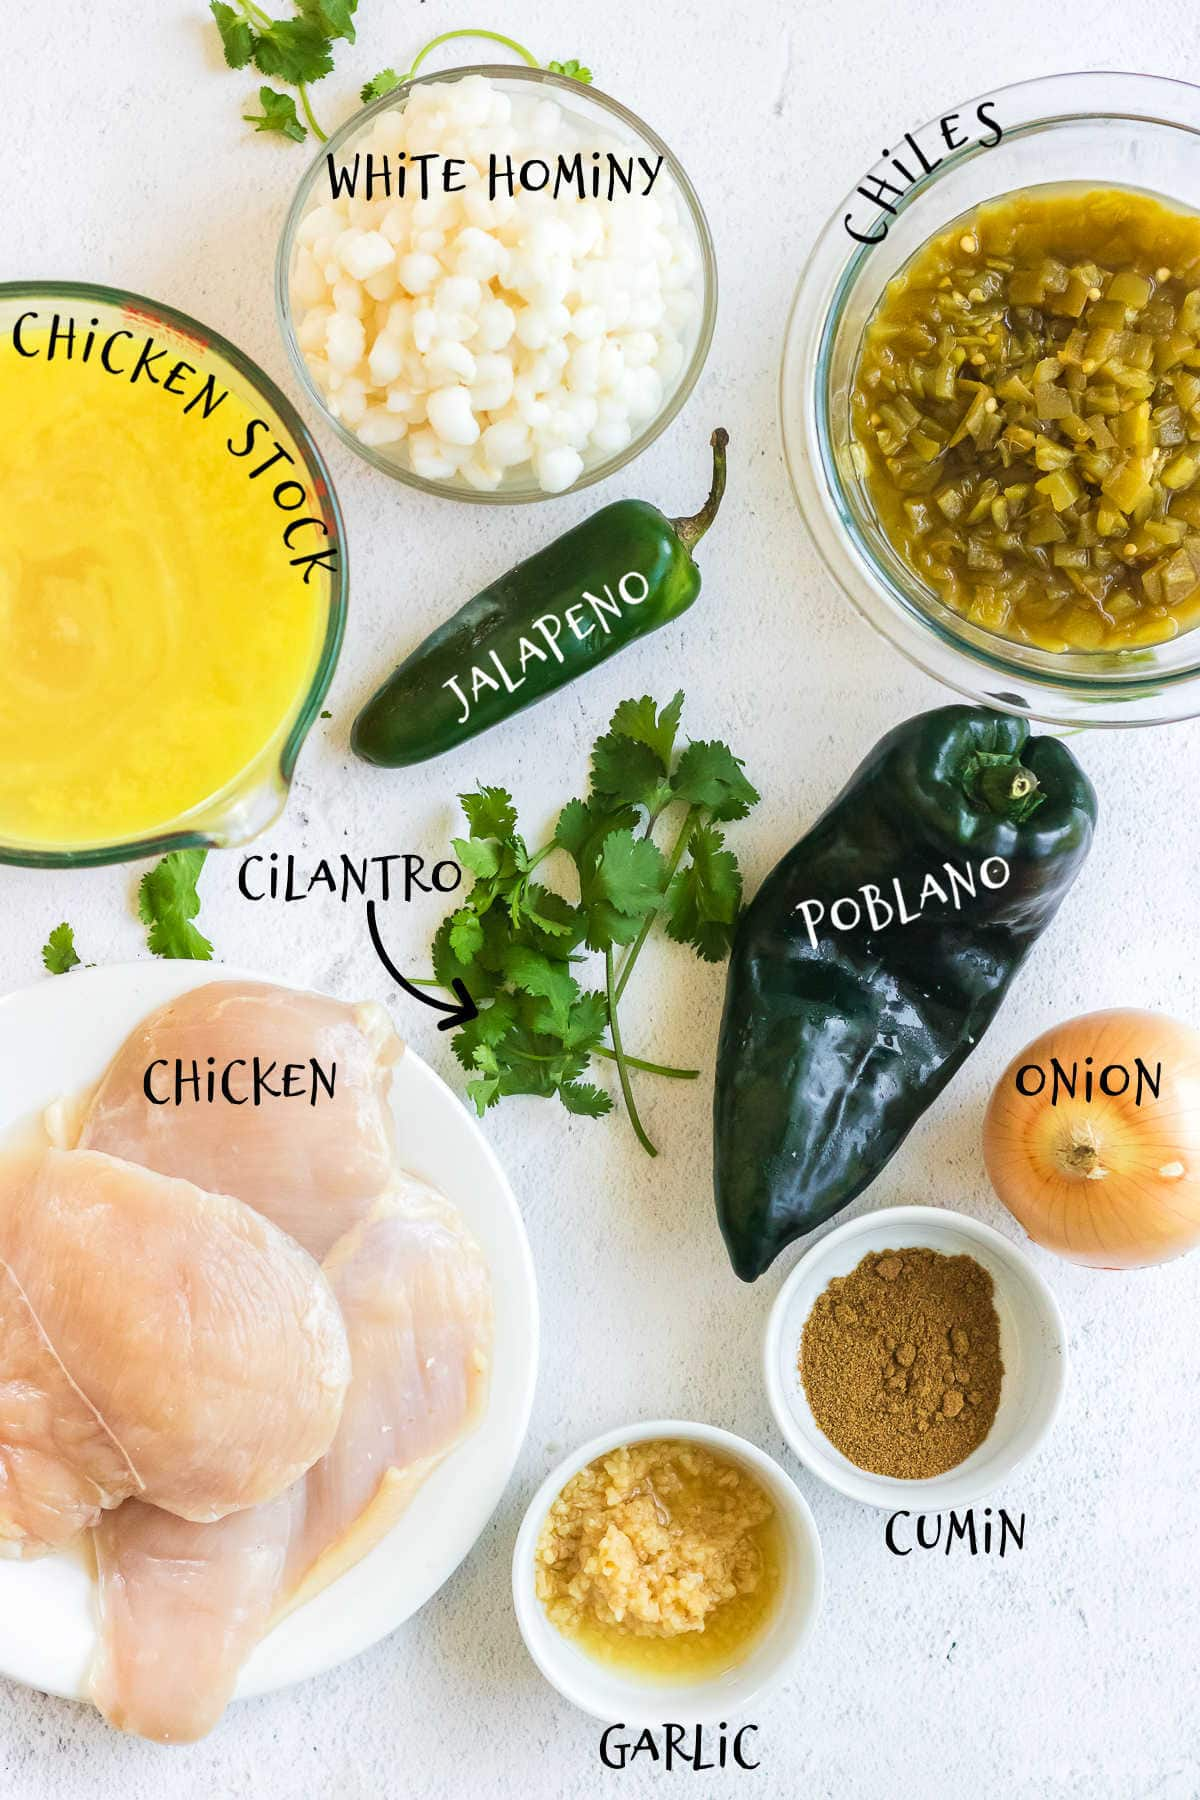 Labeled ingredients for pozole verde.